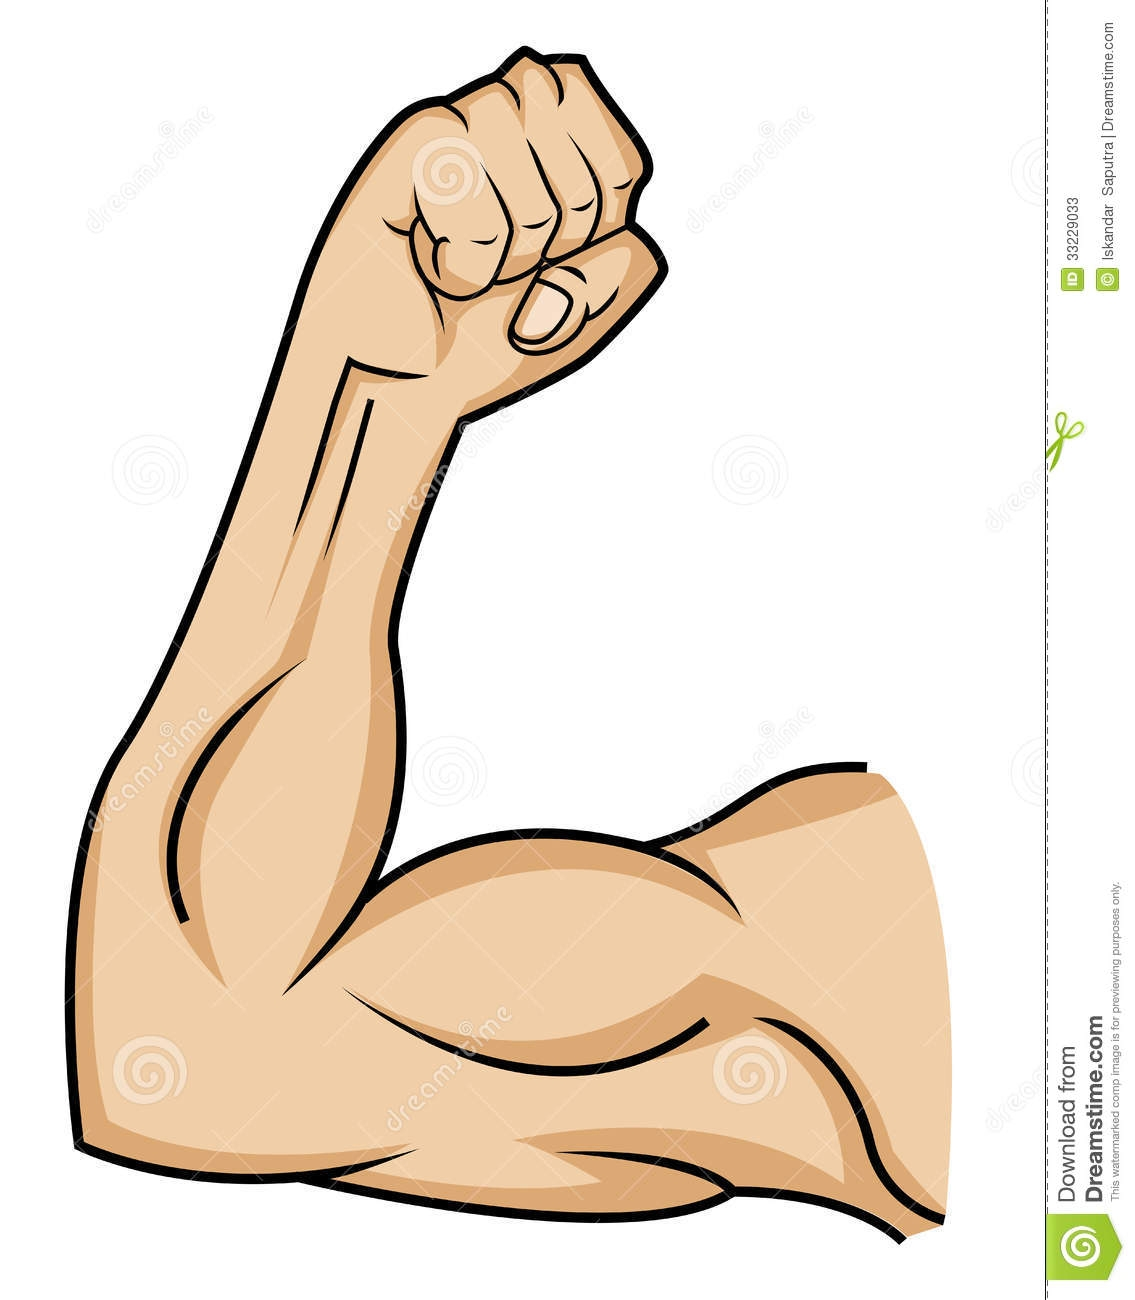 download Muscle transparent free for. Arm clipart.